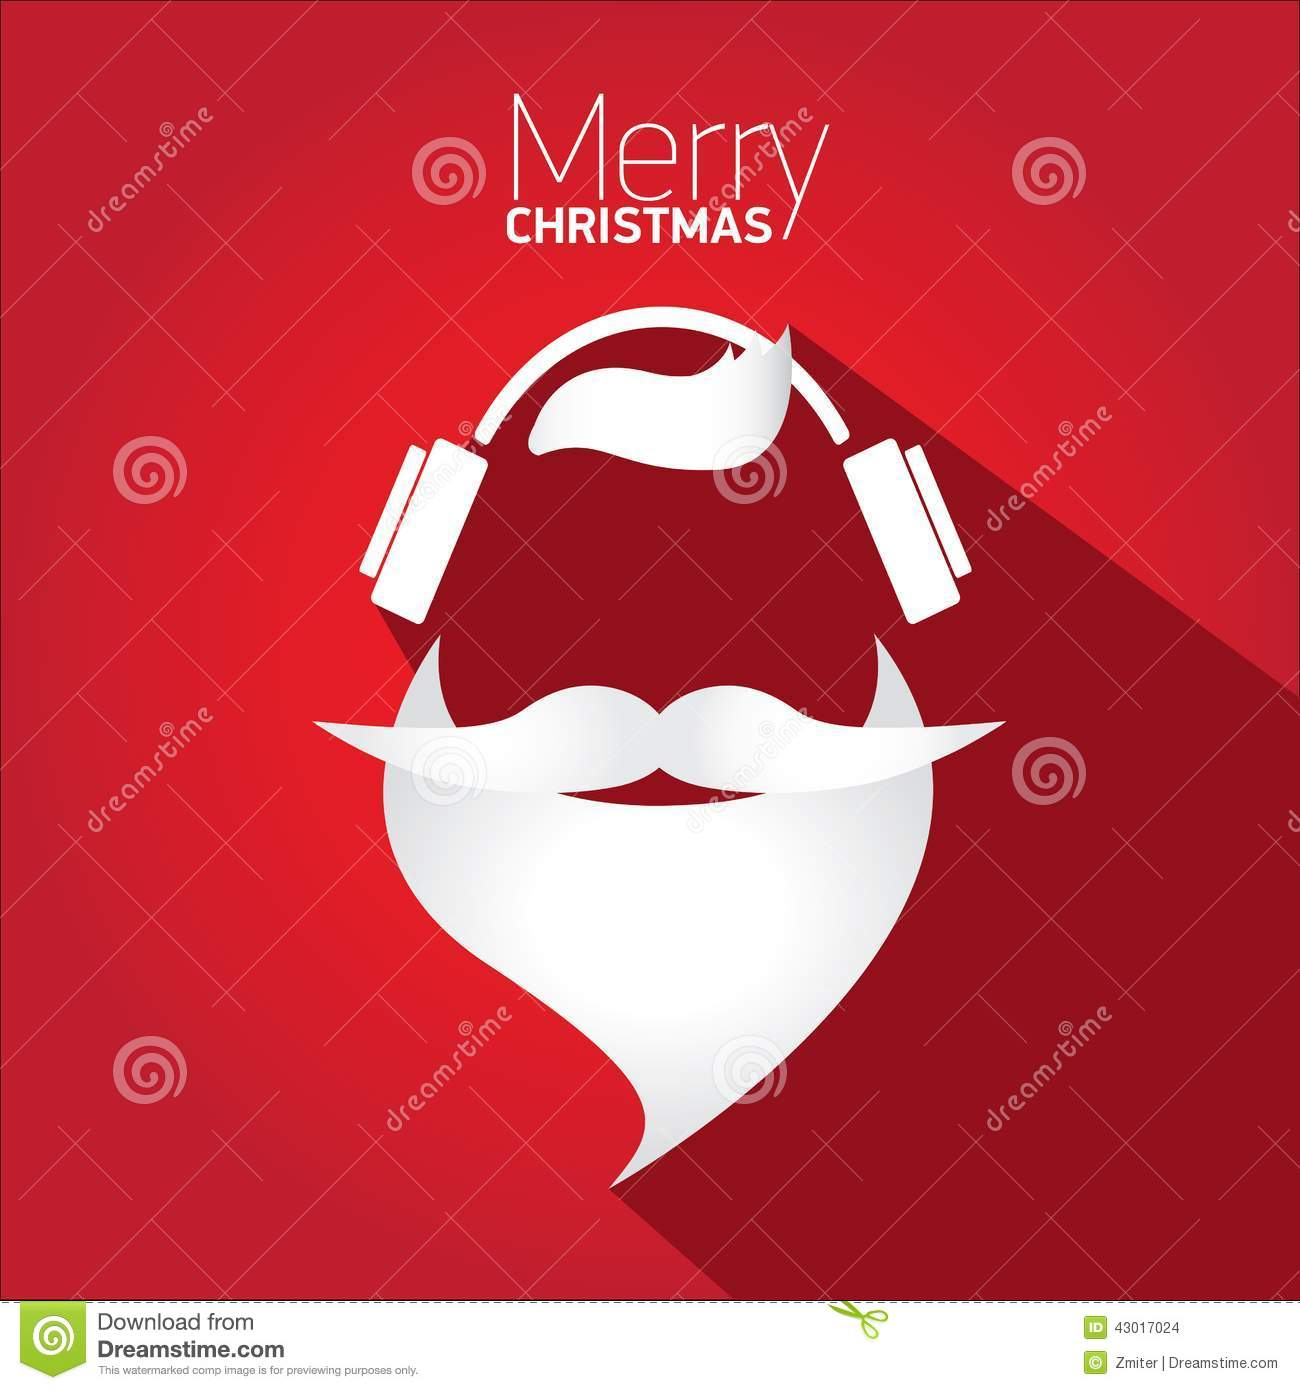 Merry Christmas Hipster Poster For Greeting Card Stock Vector